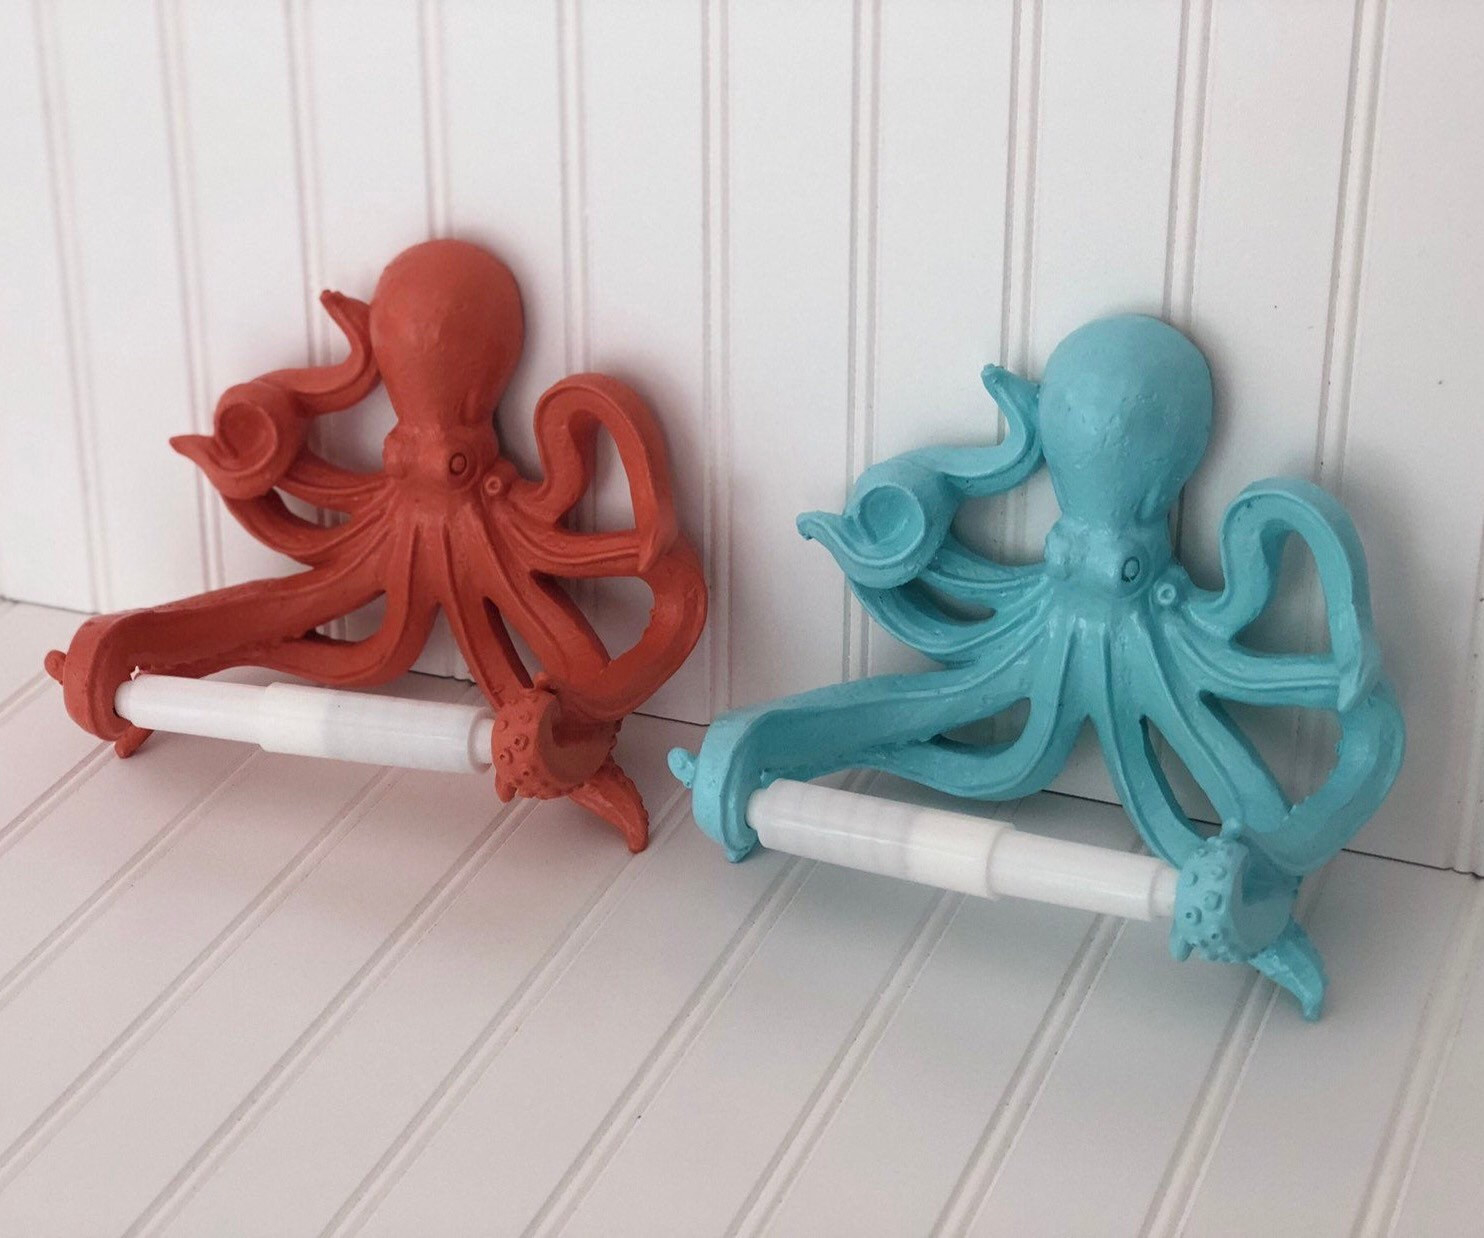 a blue and a red octopus shaped toilet paper roll holder